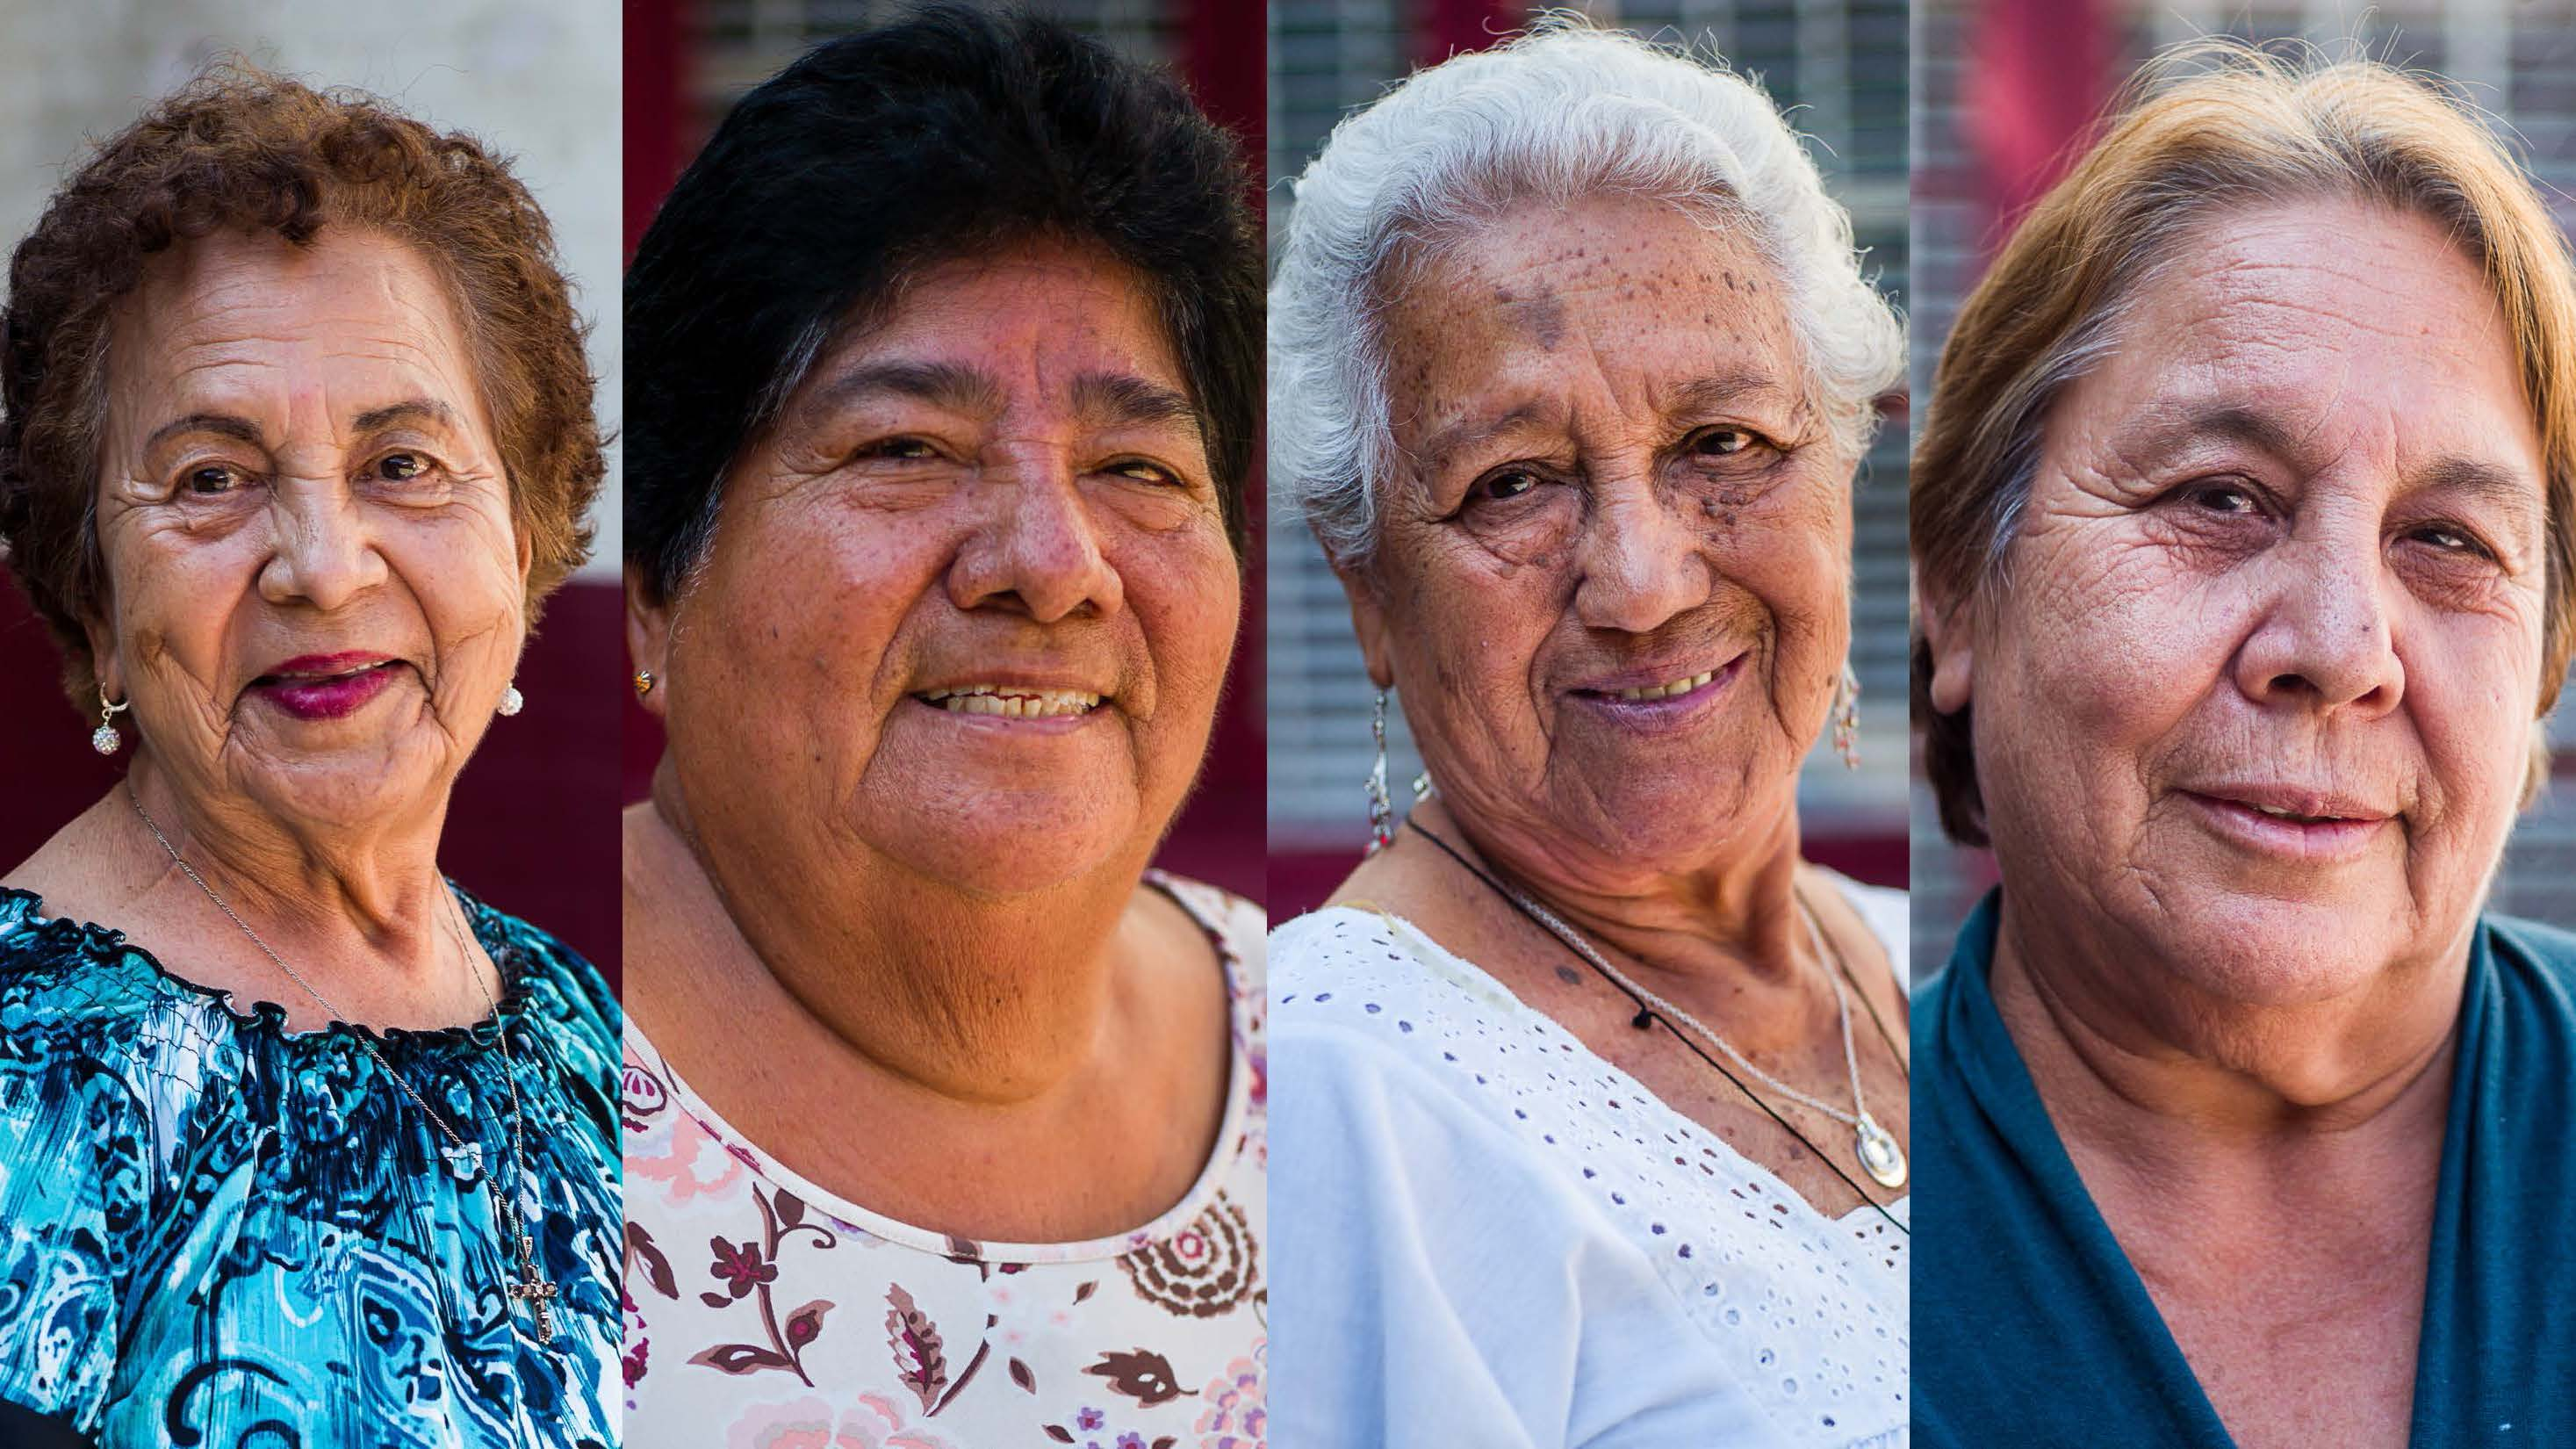 poverty in elderly women A report card on women and poverty by monica townson monica townson is an independent economic consultant working in the field of social policy she has been a consultant to the united nations economic commission for europe,.